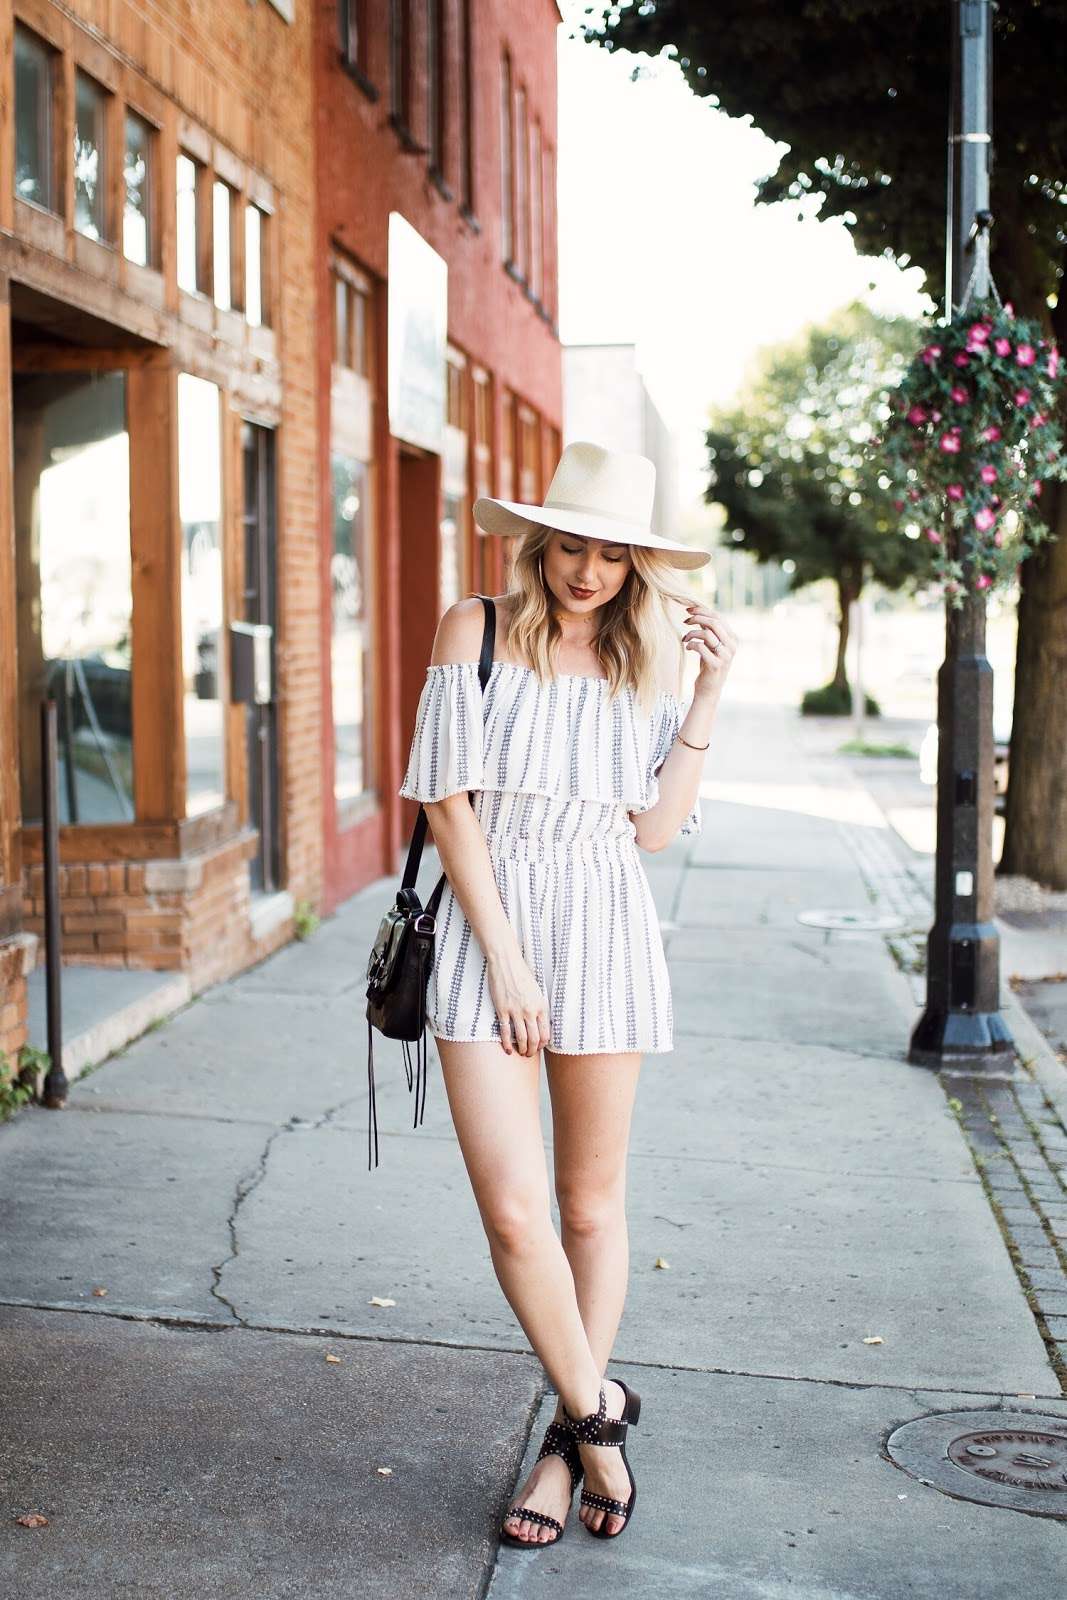 off-shoulder romper with a straw hat